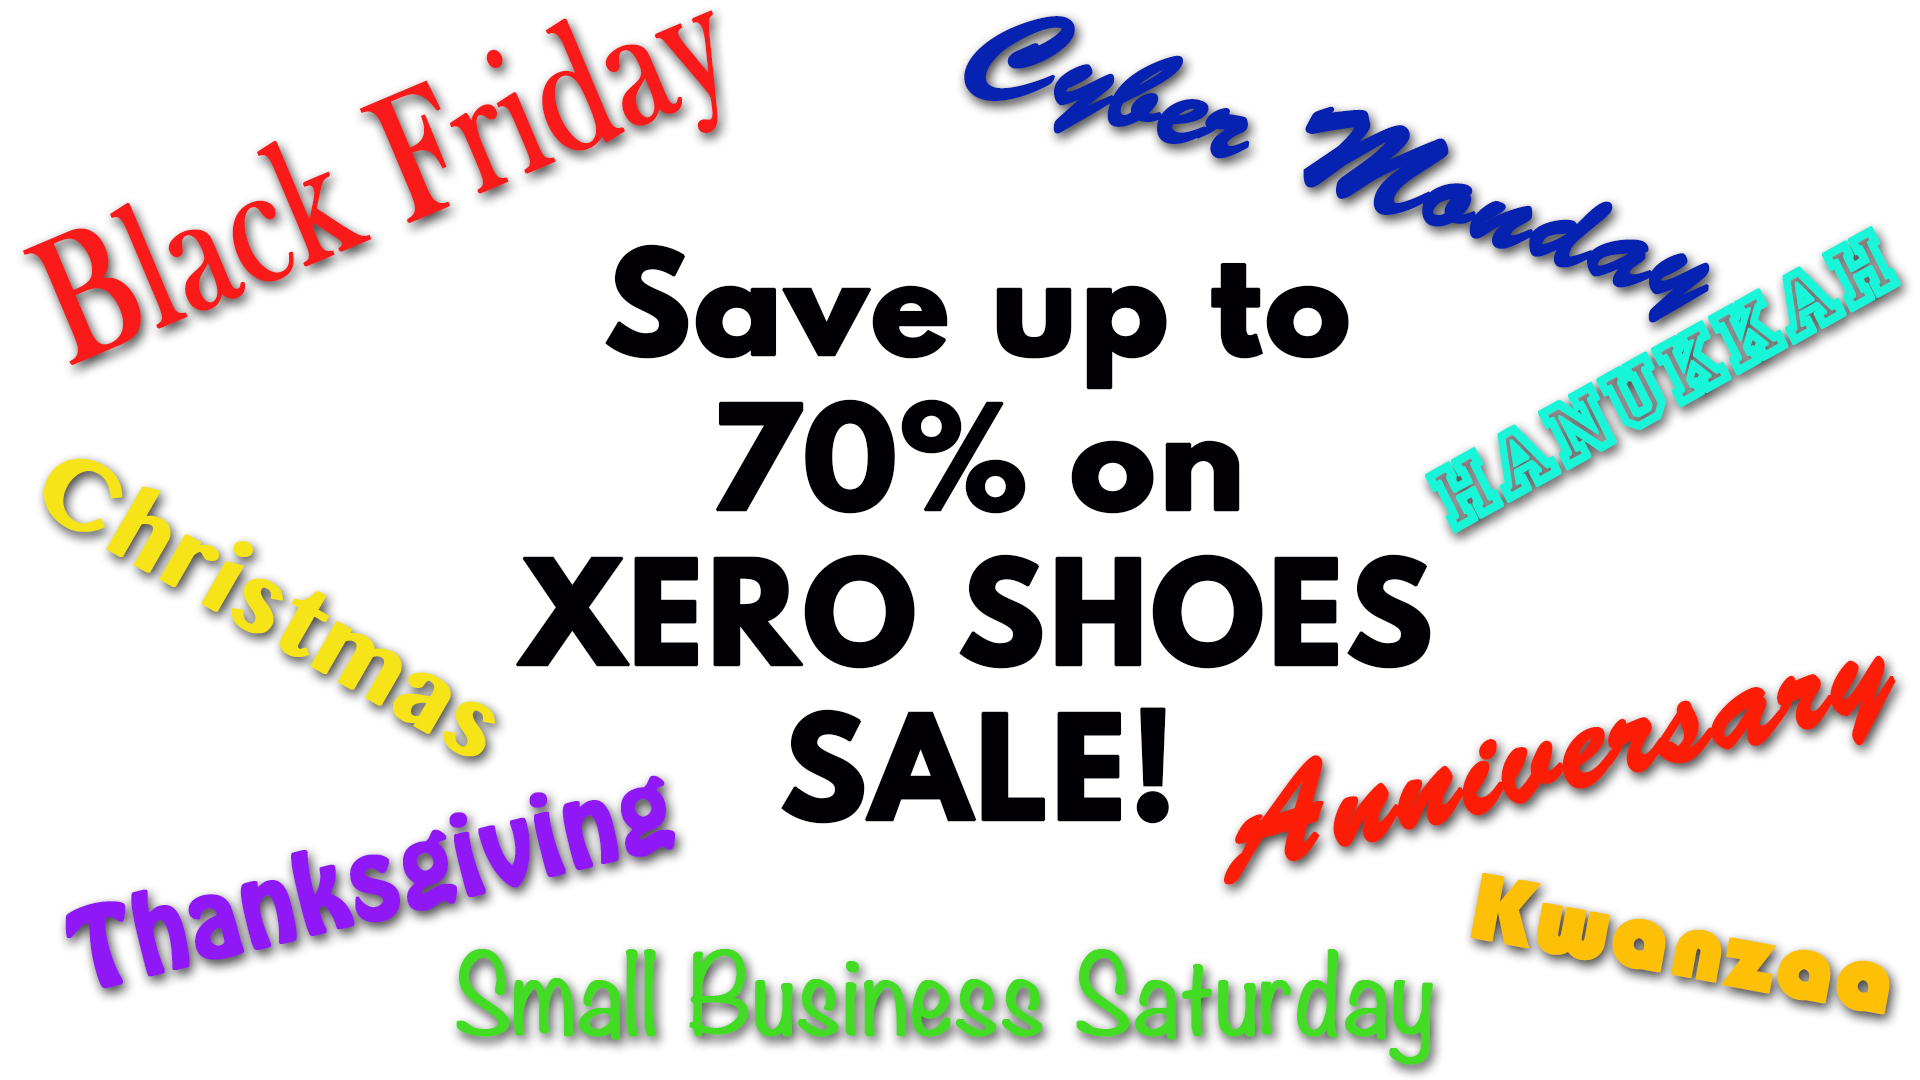 Win a $50 Xero Shoes Gift Certificate! Giveaway Image